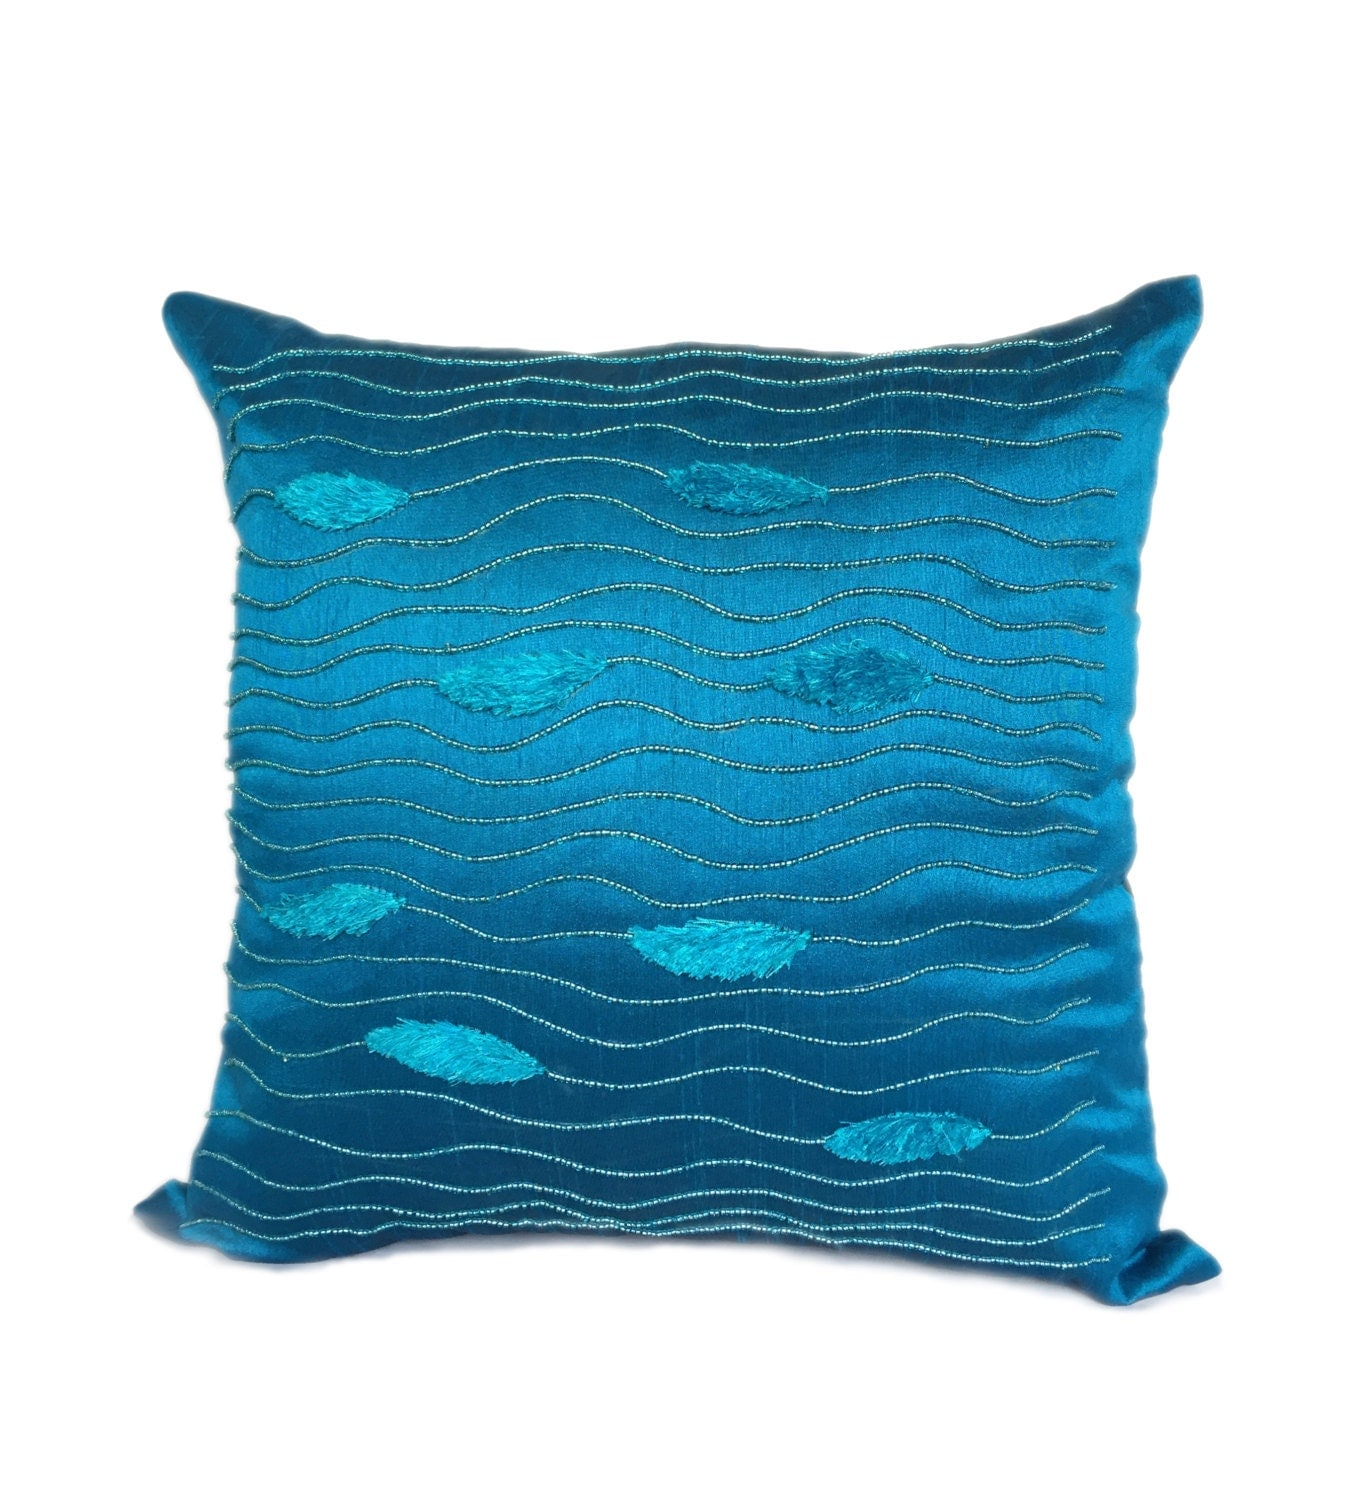 Decorative Pillows With Beads : Blue Pillow Cover Beaded In A Wave Pattern Decorative Pillows